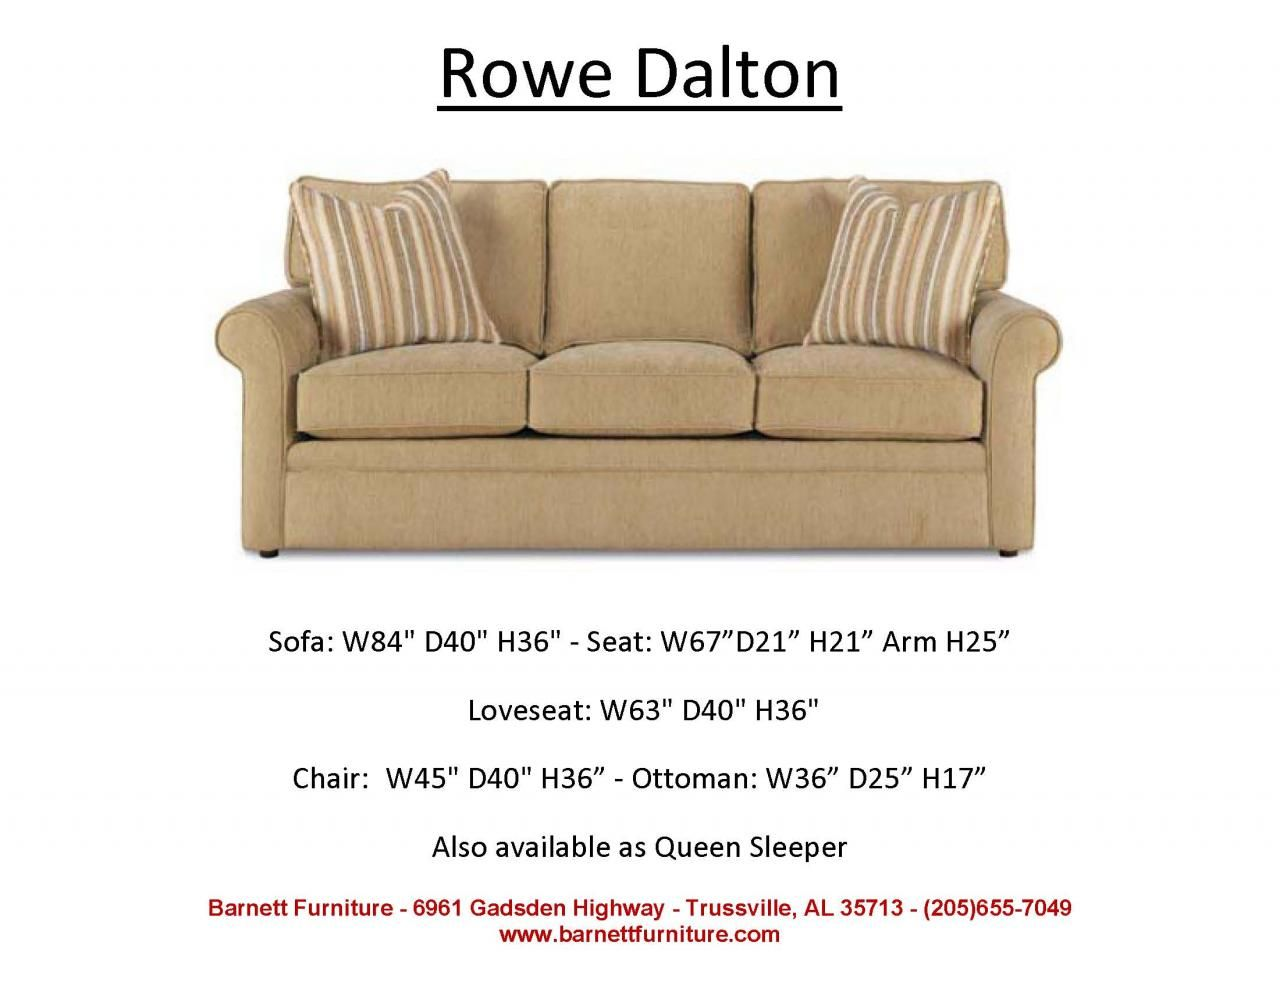 average size of a sofa manstad bed measurements rowe dalton you choose the fabric